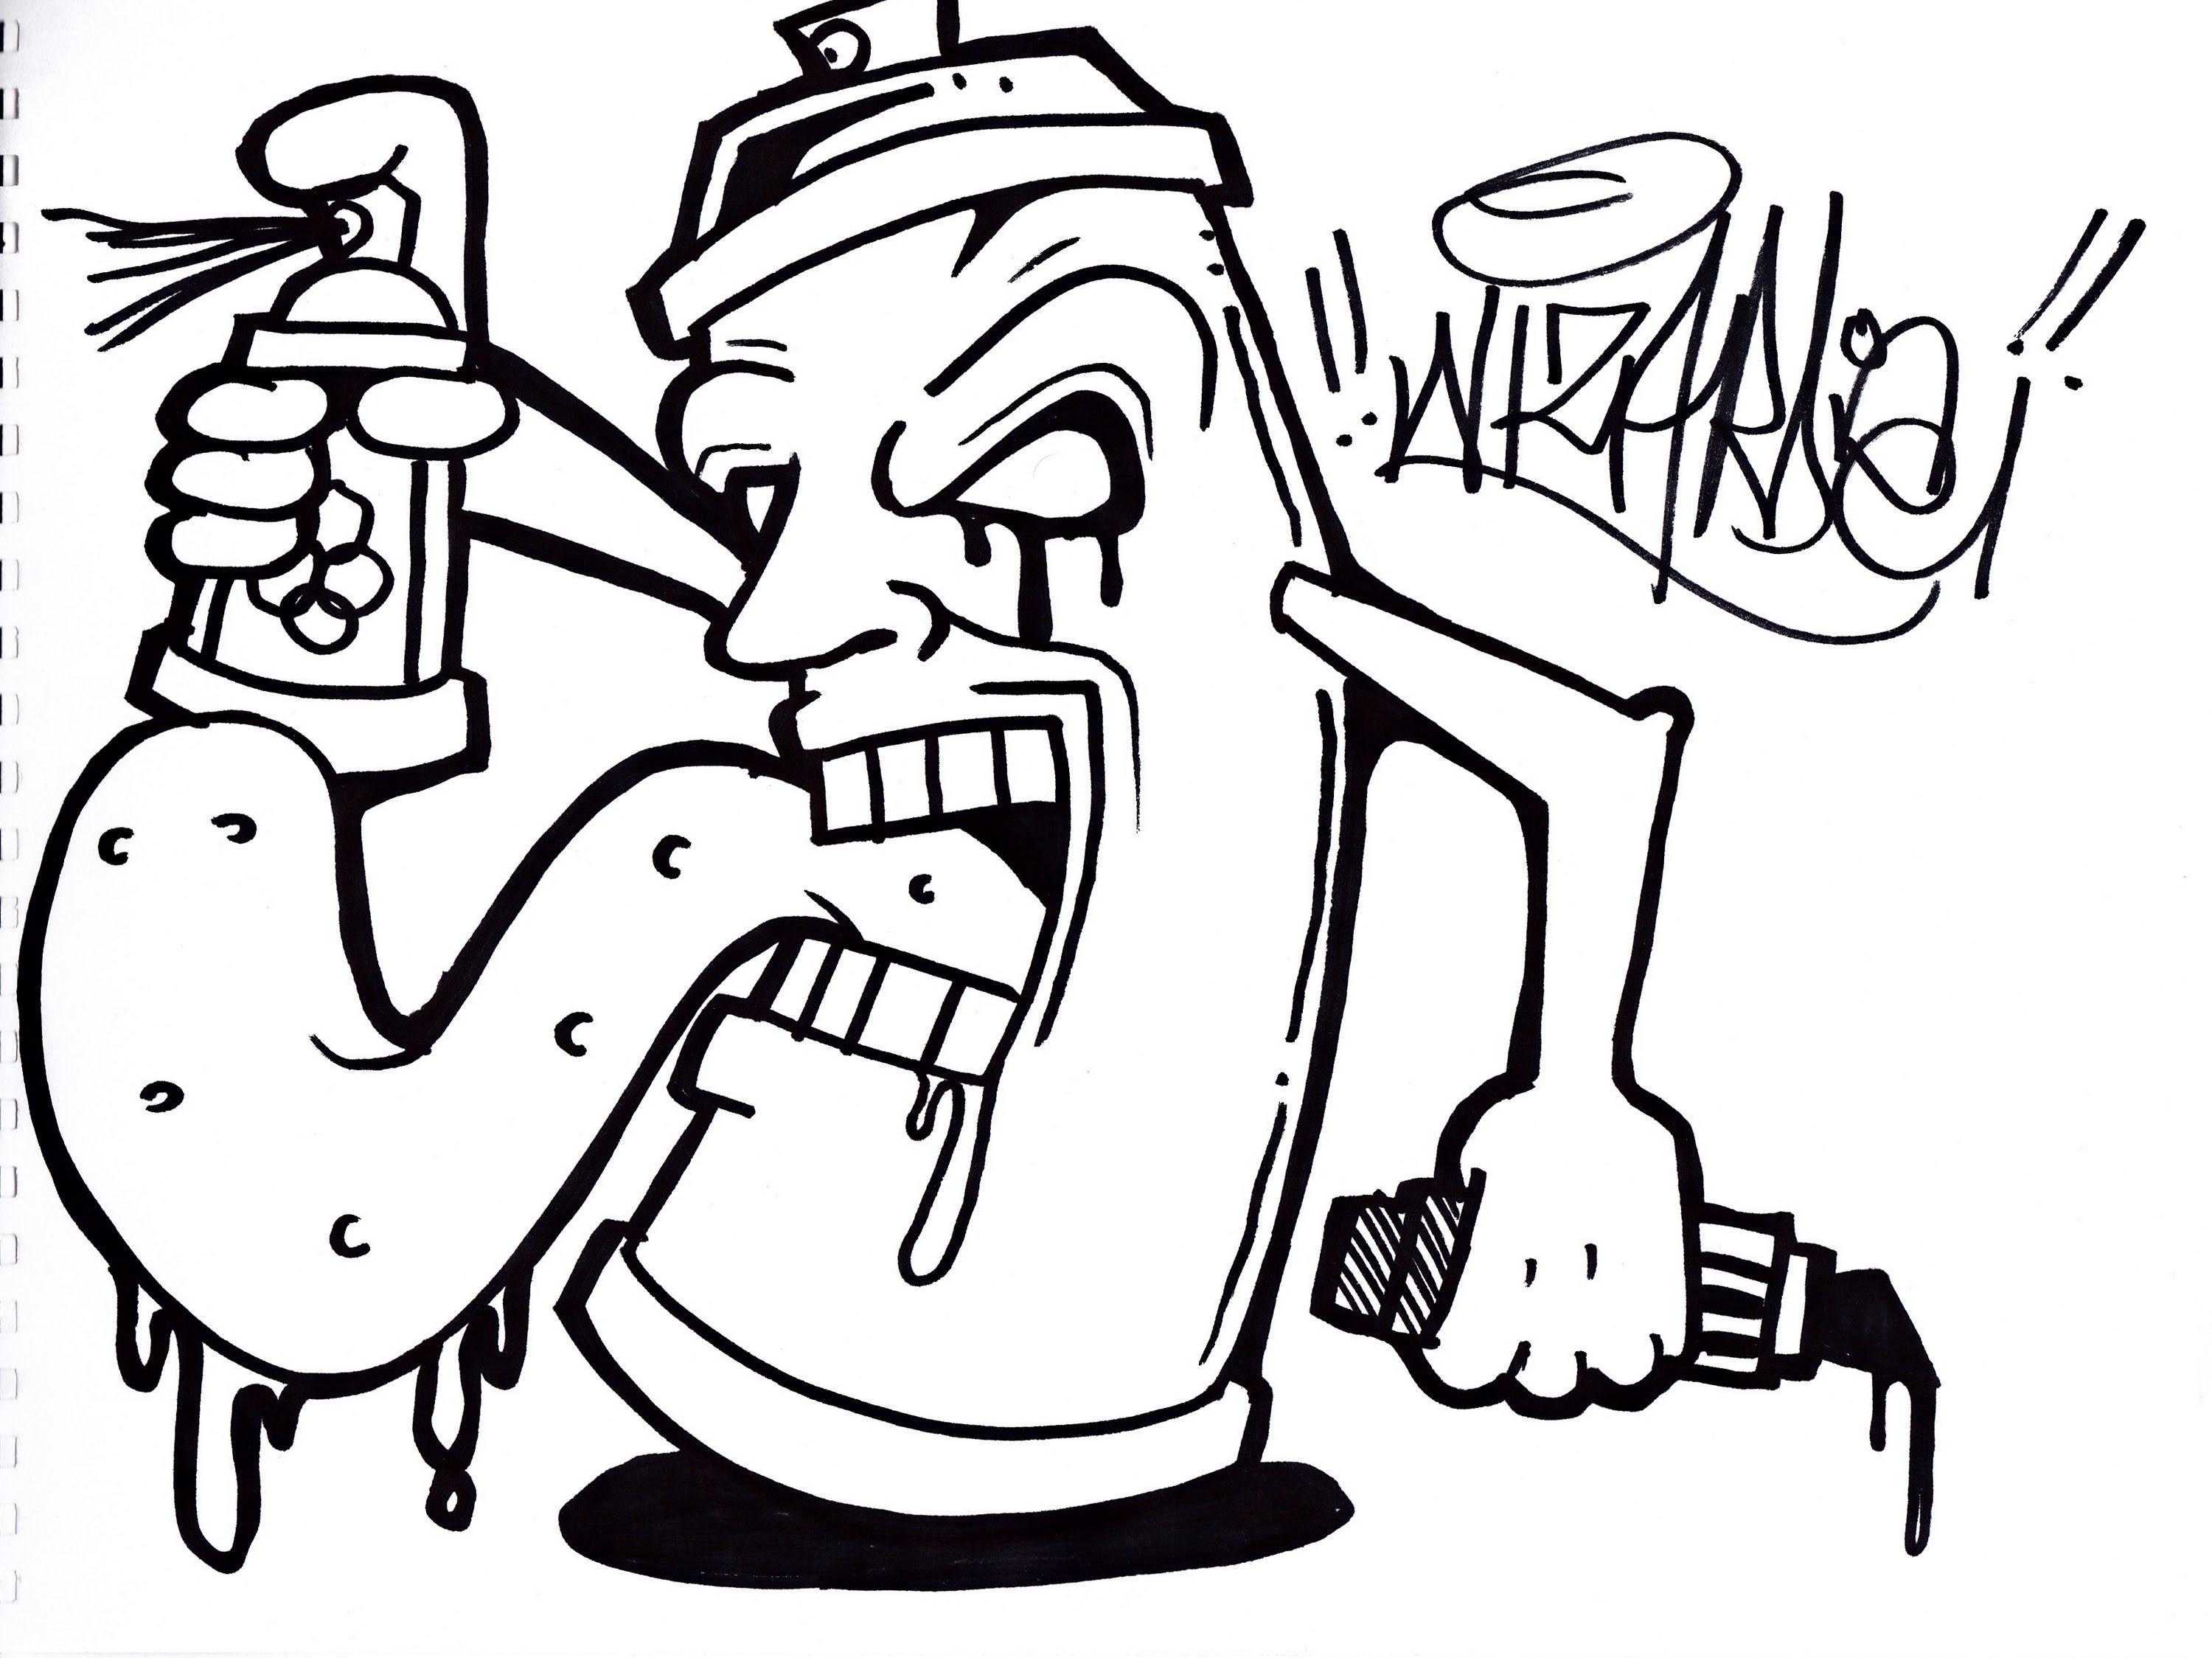 Spray clipart graffiti. Monster font can free